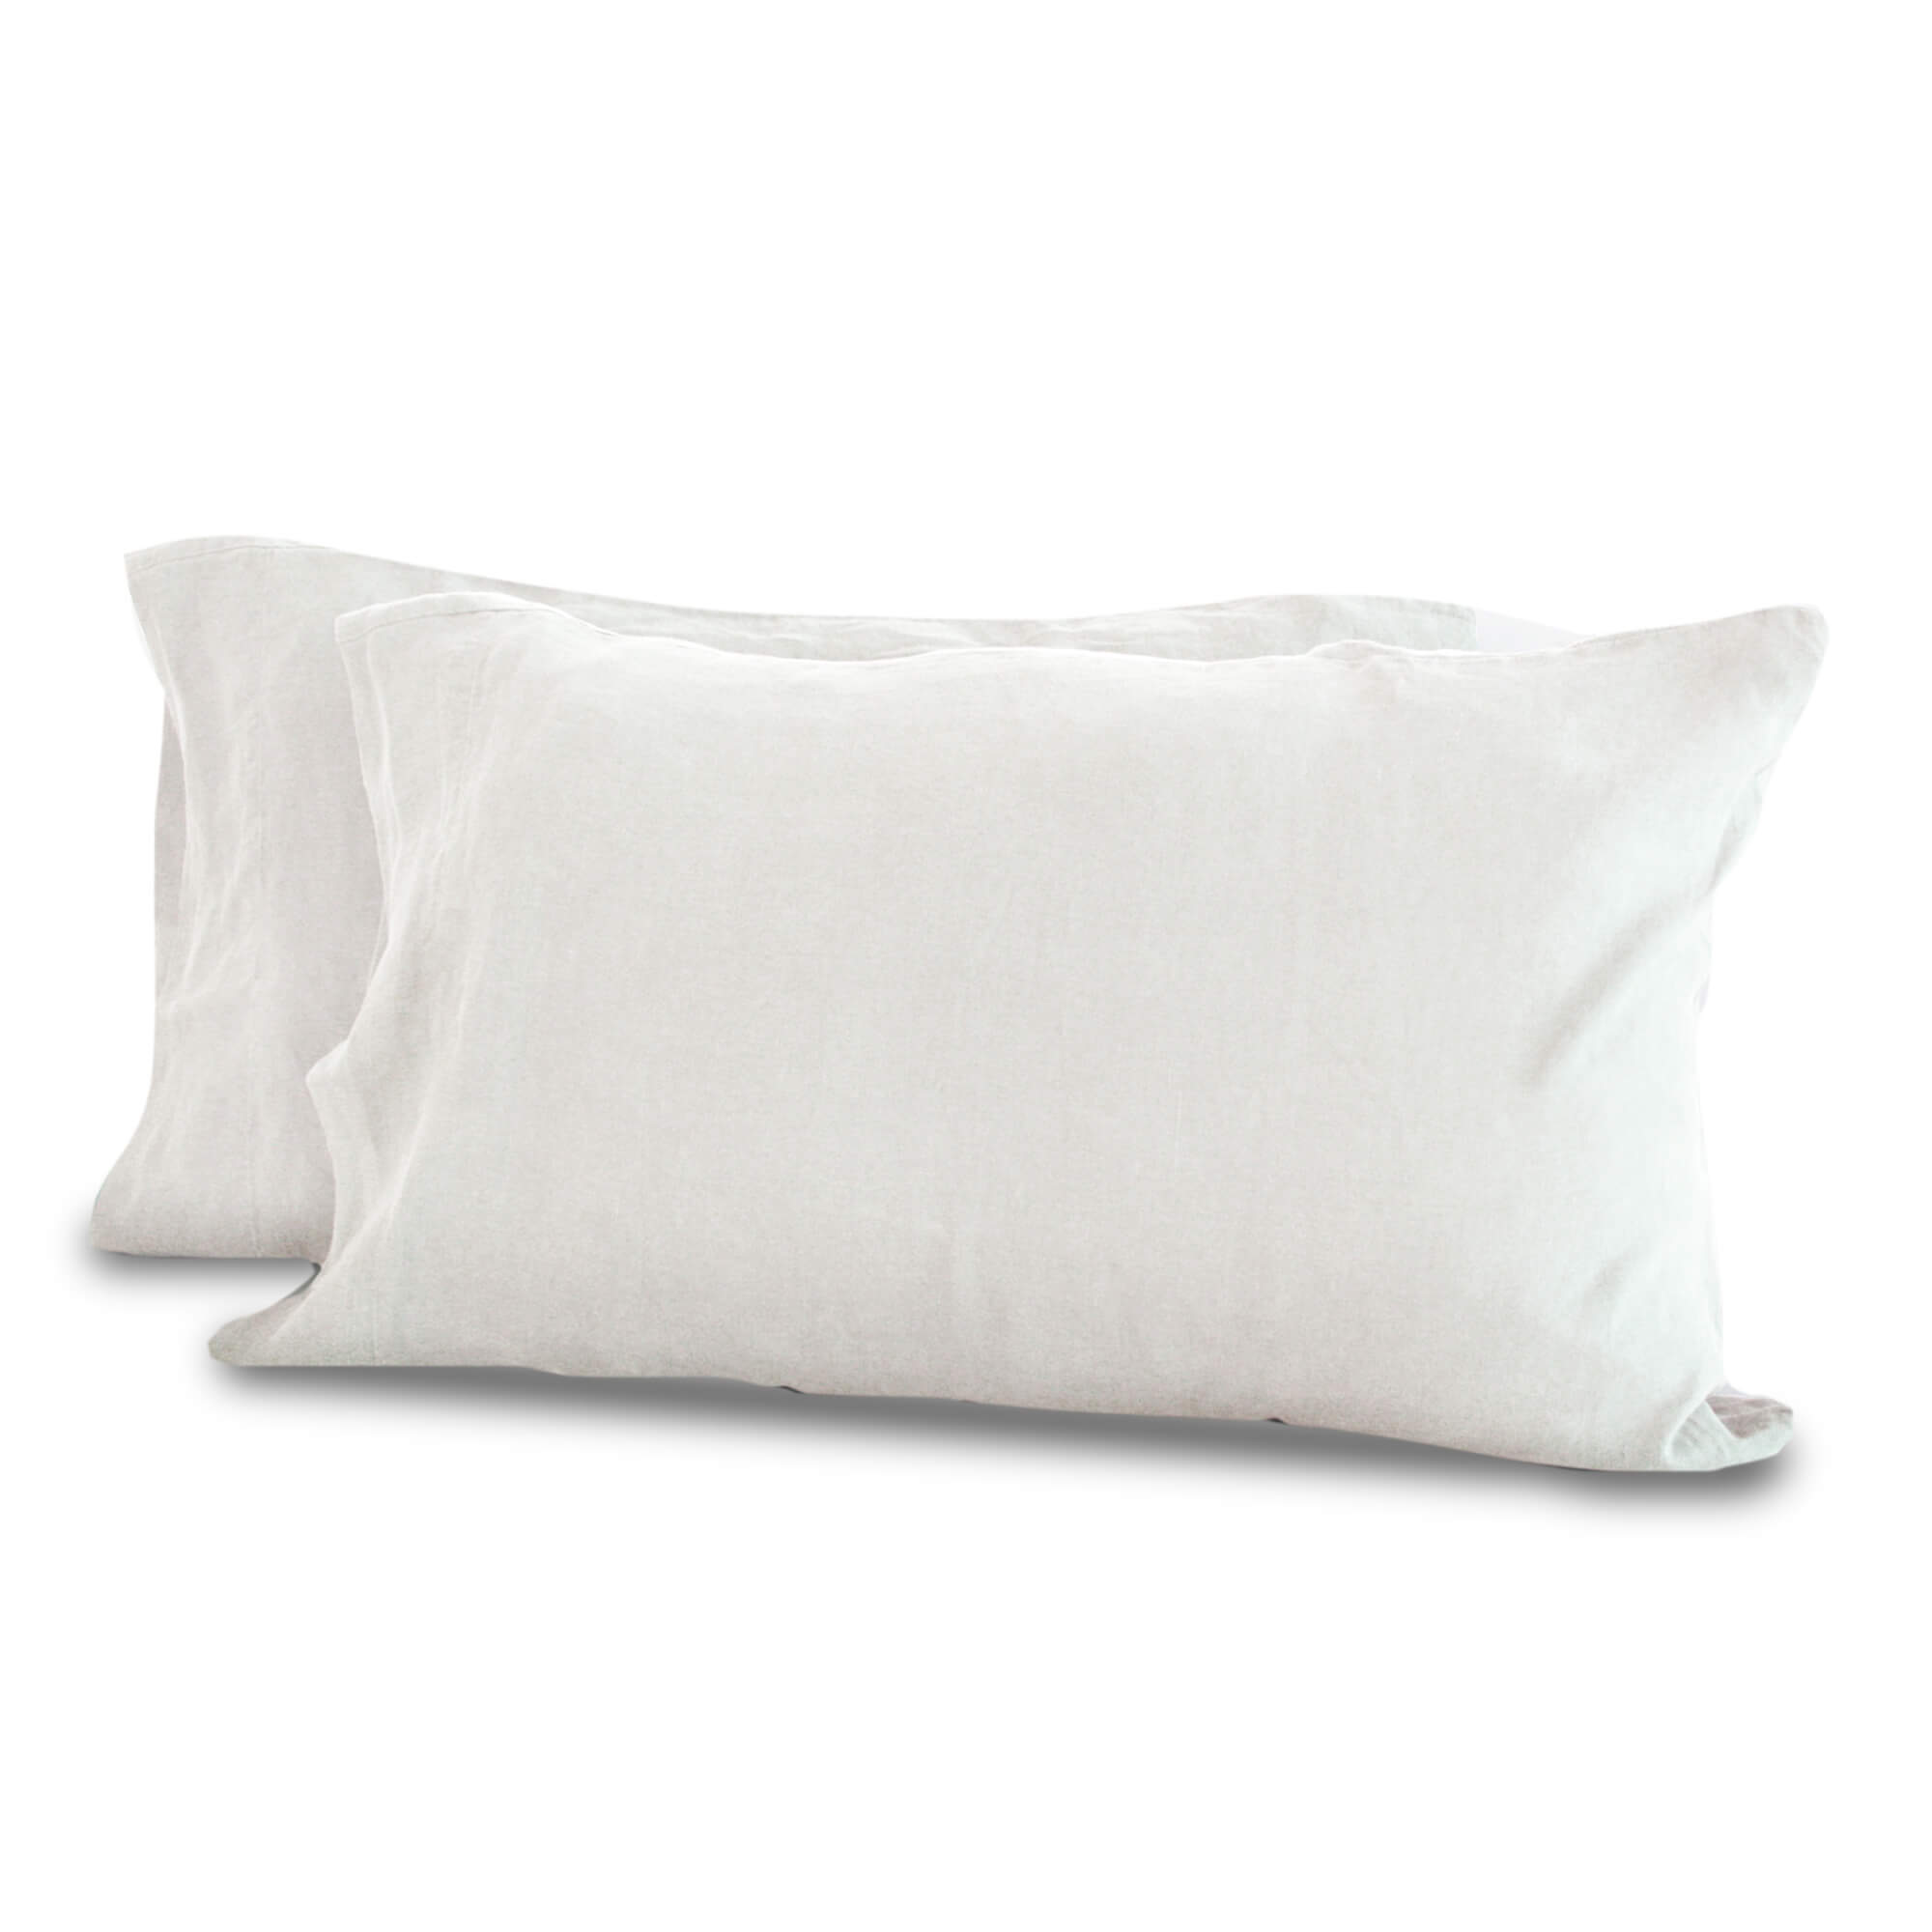 Delilah Home 100% Hemp Pillow Cases